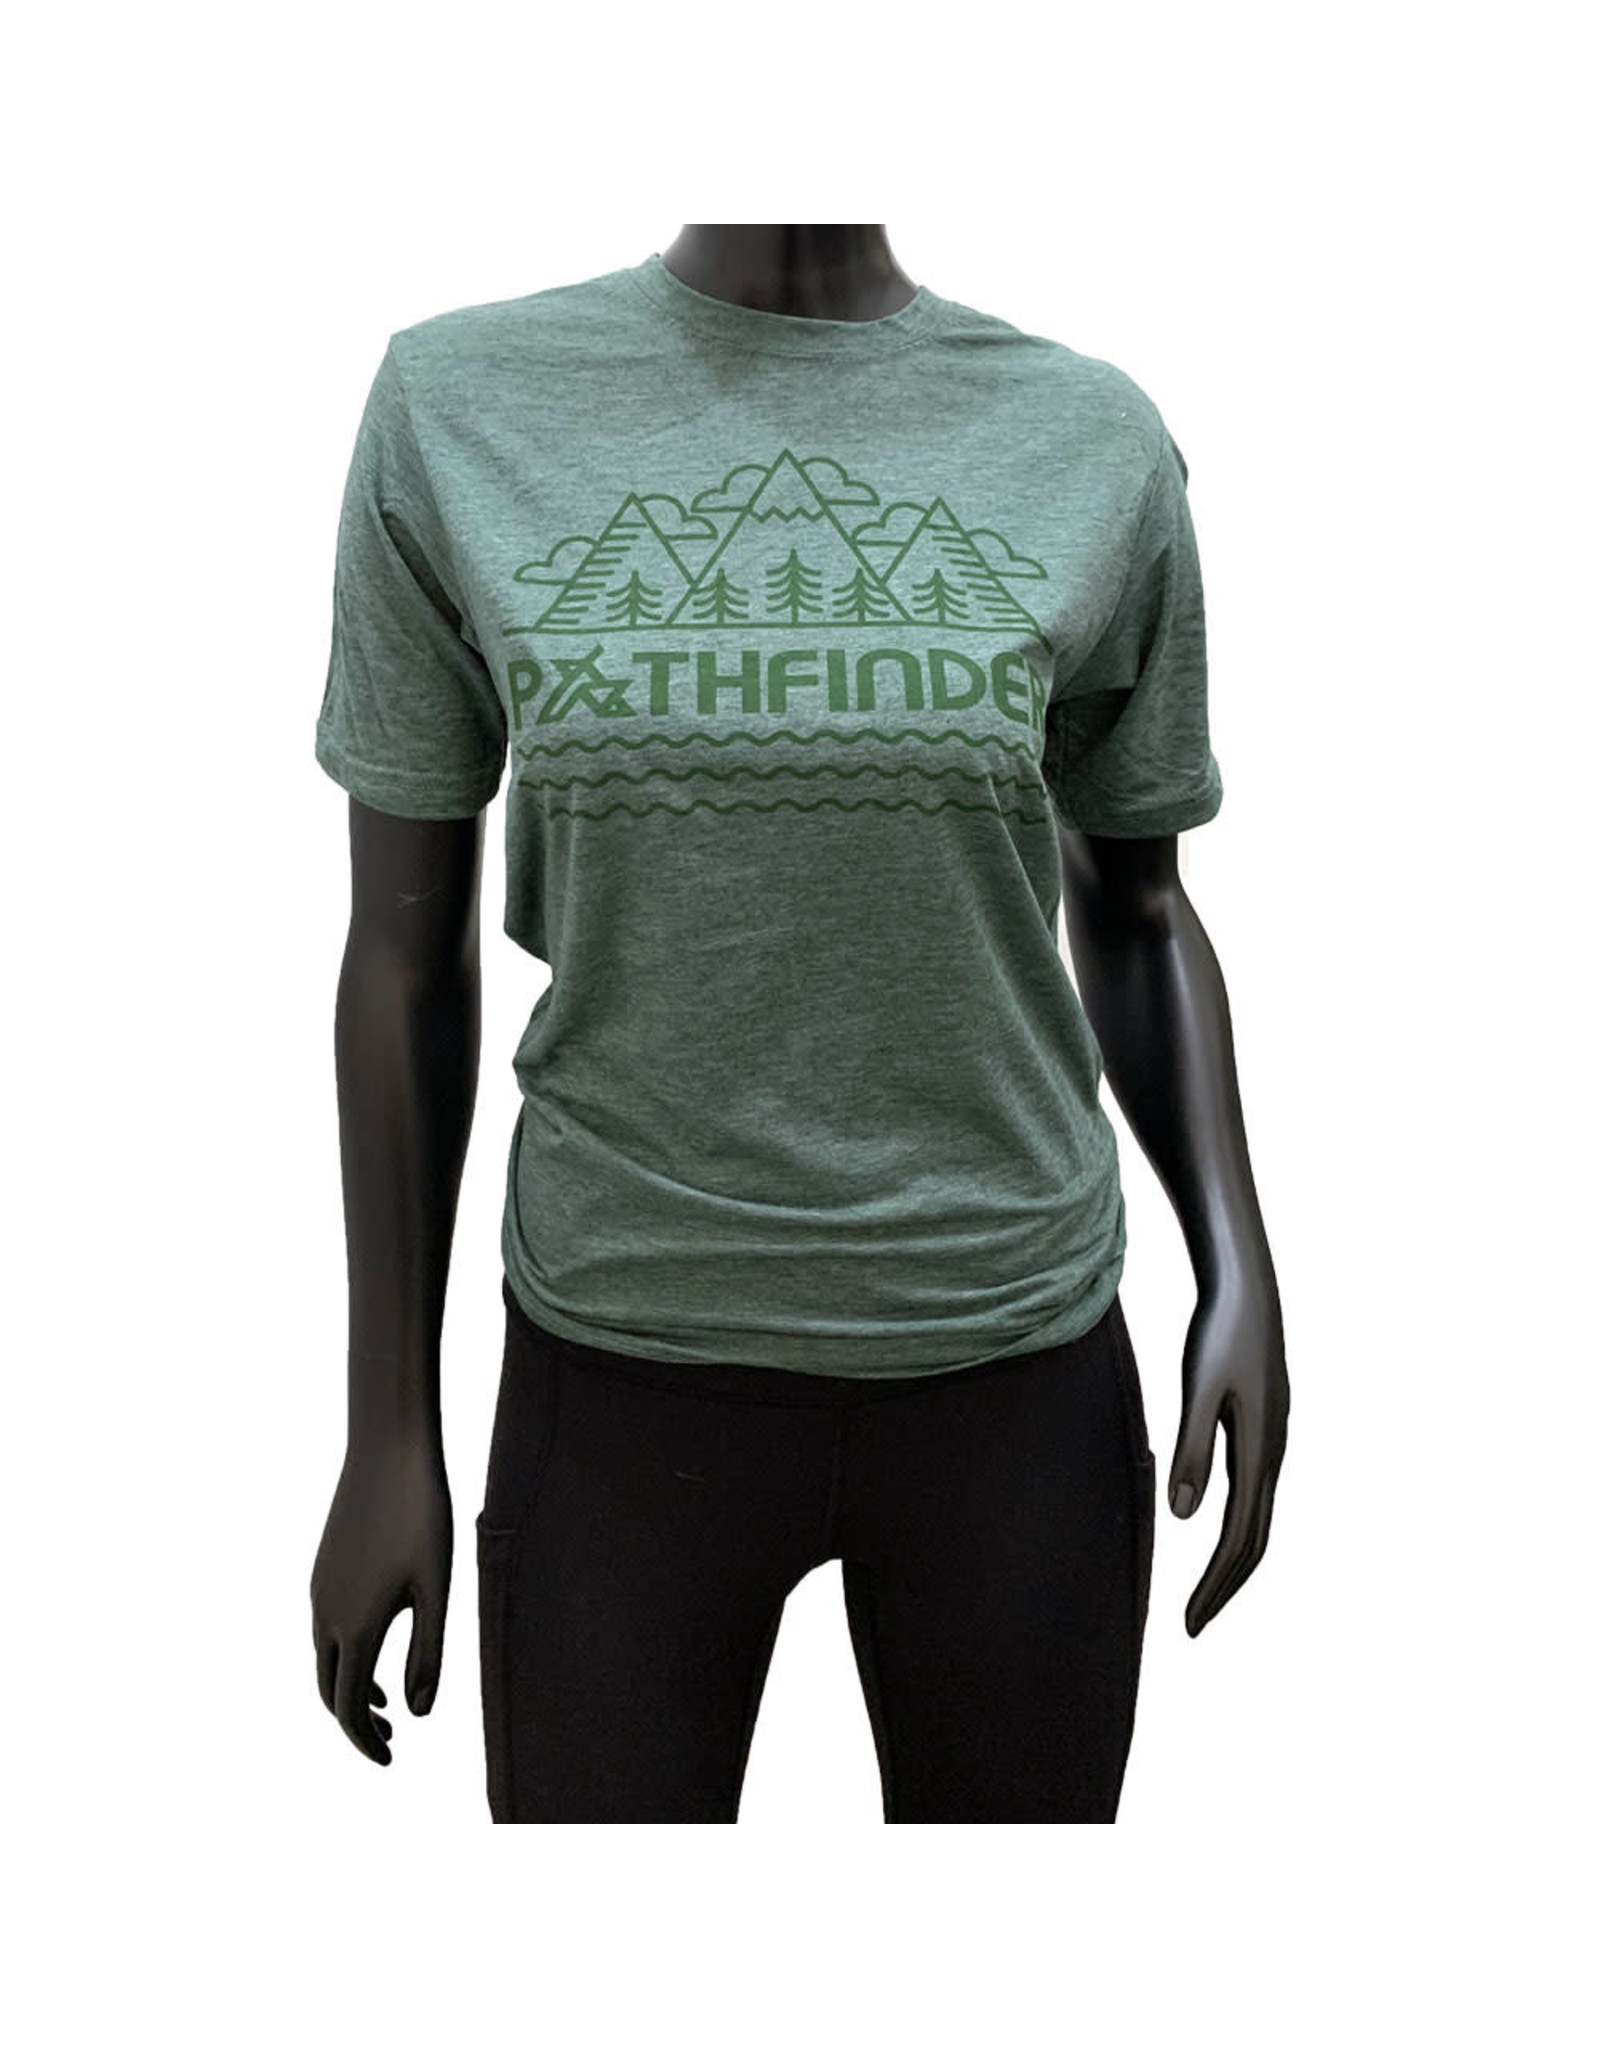 Pathfinder Mountain Poly/Cotton Crew Tee Royal Pine/Green